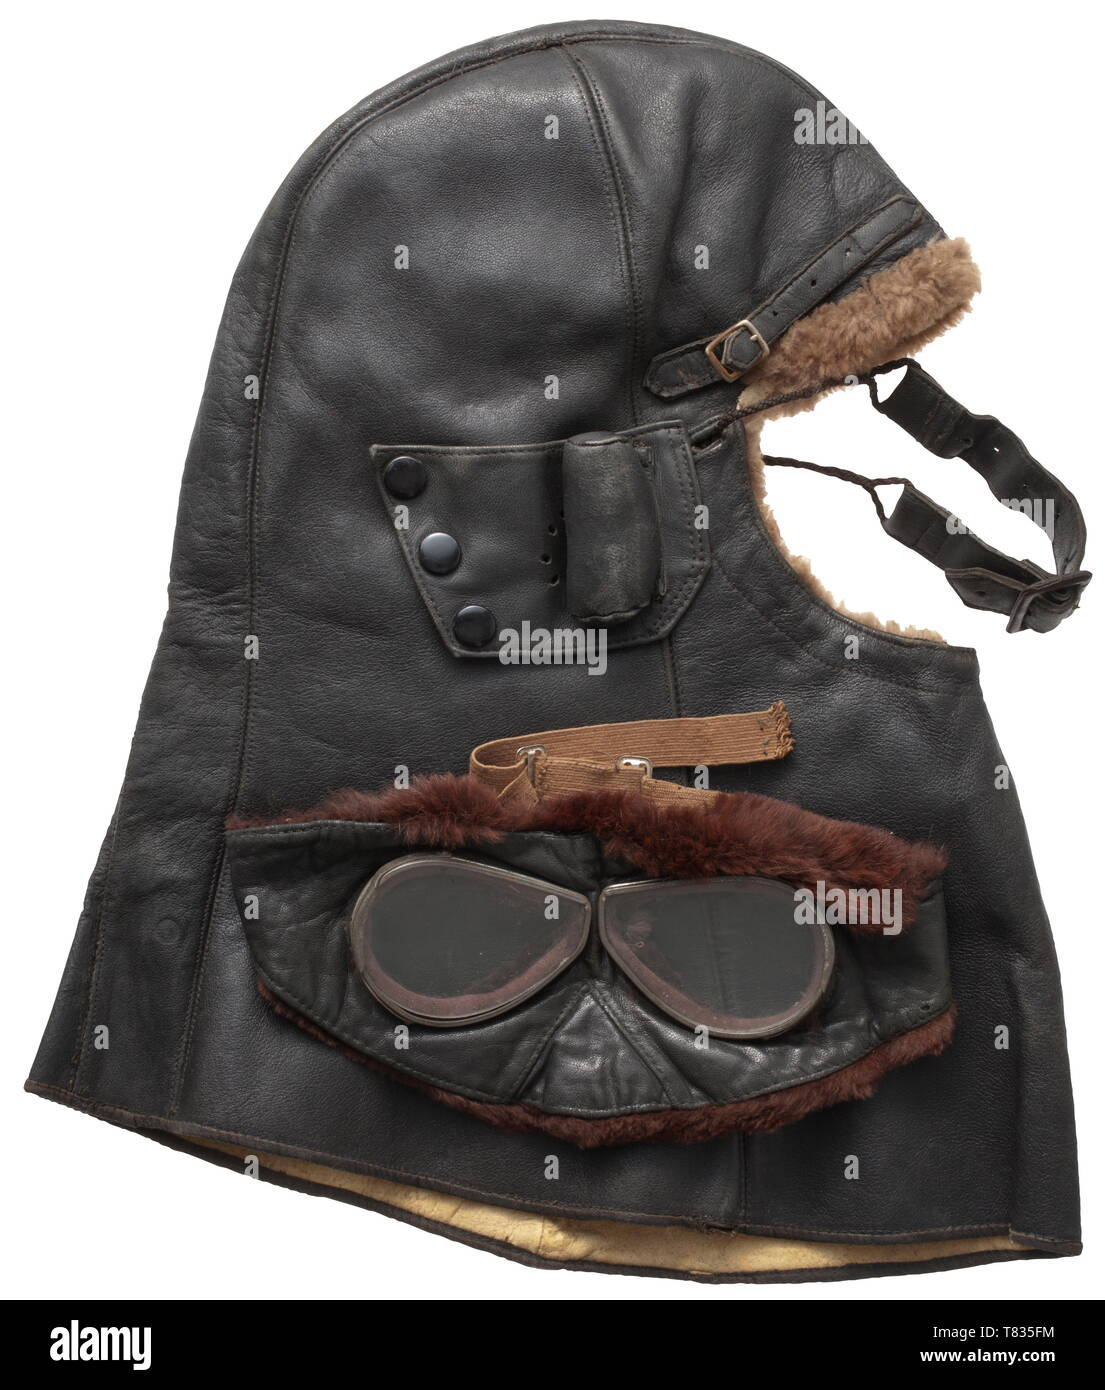 A flying cap with goggles of the Royal Naval Air Service Smooth black leather with elongated neck-guard typically worn by RNAS observers, rabbit fur lining. The sides with foldable ear cut-outs with press-buttons and ear protectors. Two adjustable leather drawstrings for the attachment of face protection and goggles. Including face mask with a switch frame for goggle lenses. Fine dark grey leather with rabbit fur lining, light brown drawstring (slightly brittle), all without maker's marks. Rare equipment set of the RNAS. historic, historical, troop, troops, armed forces, mi, Editorial-Use-Only Stock Photo